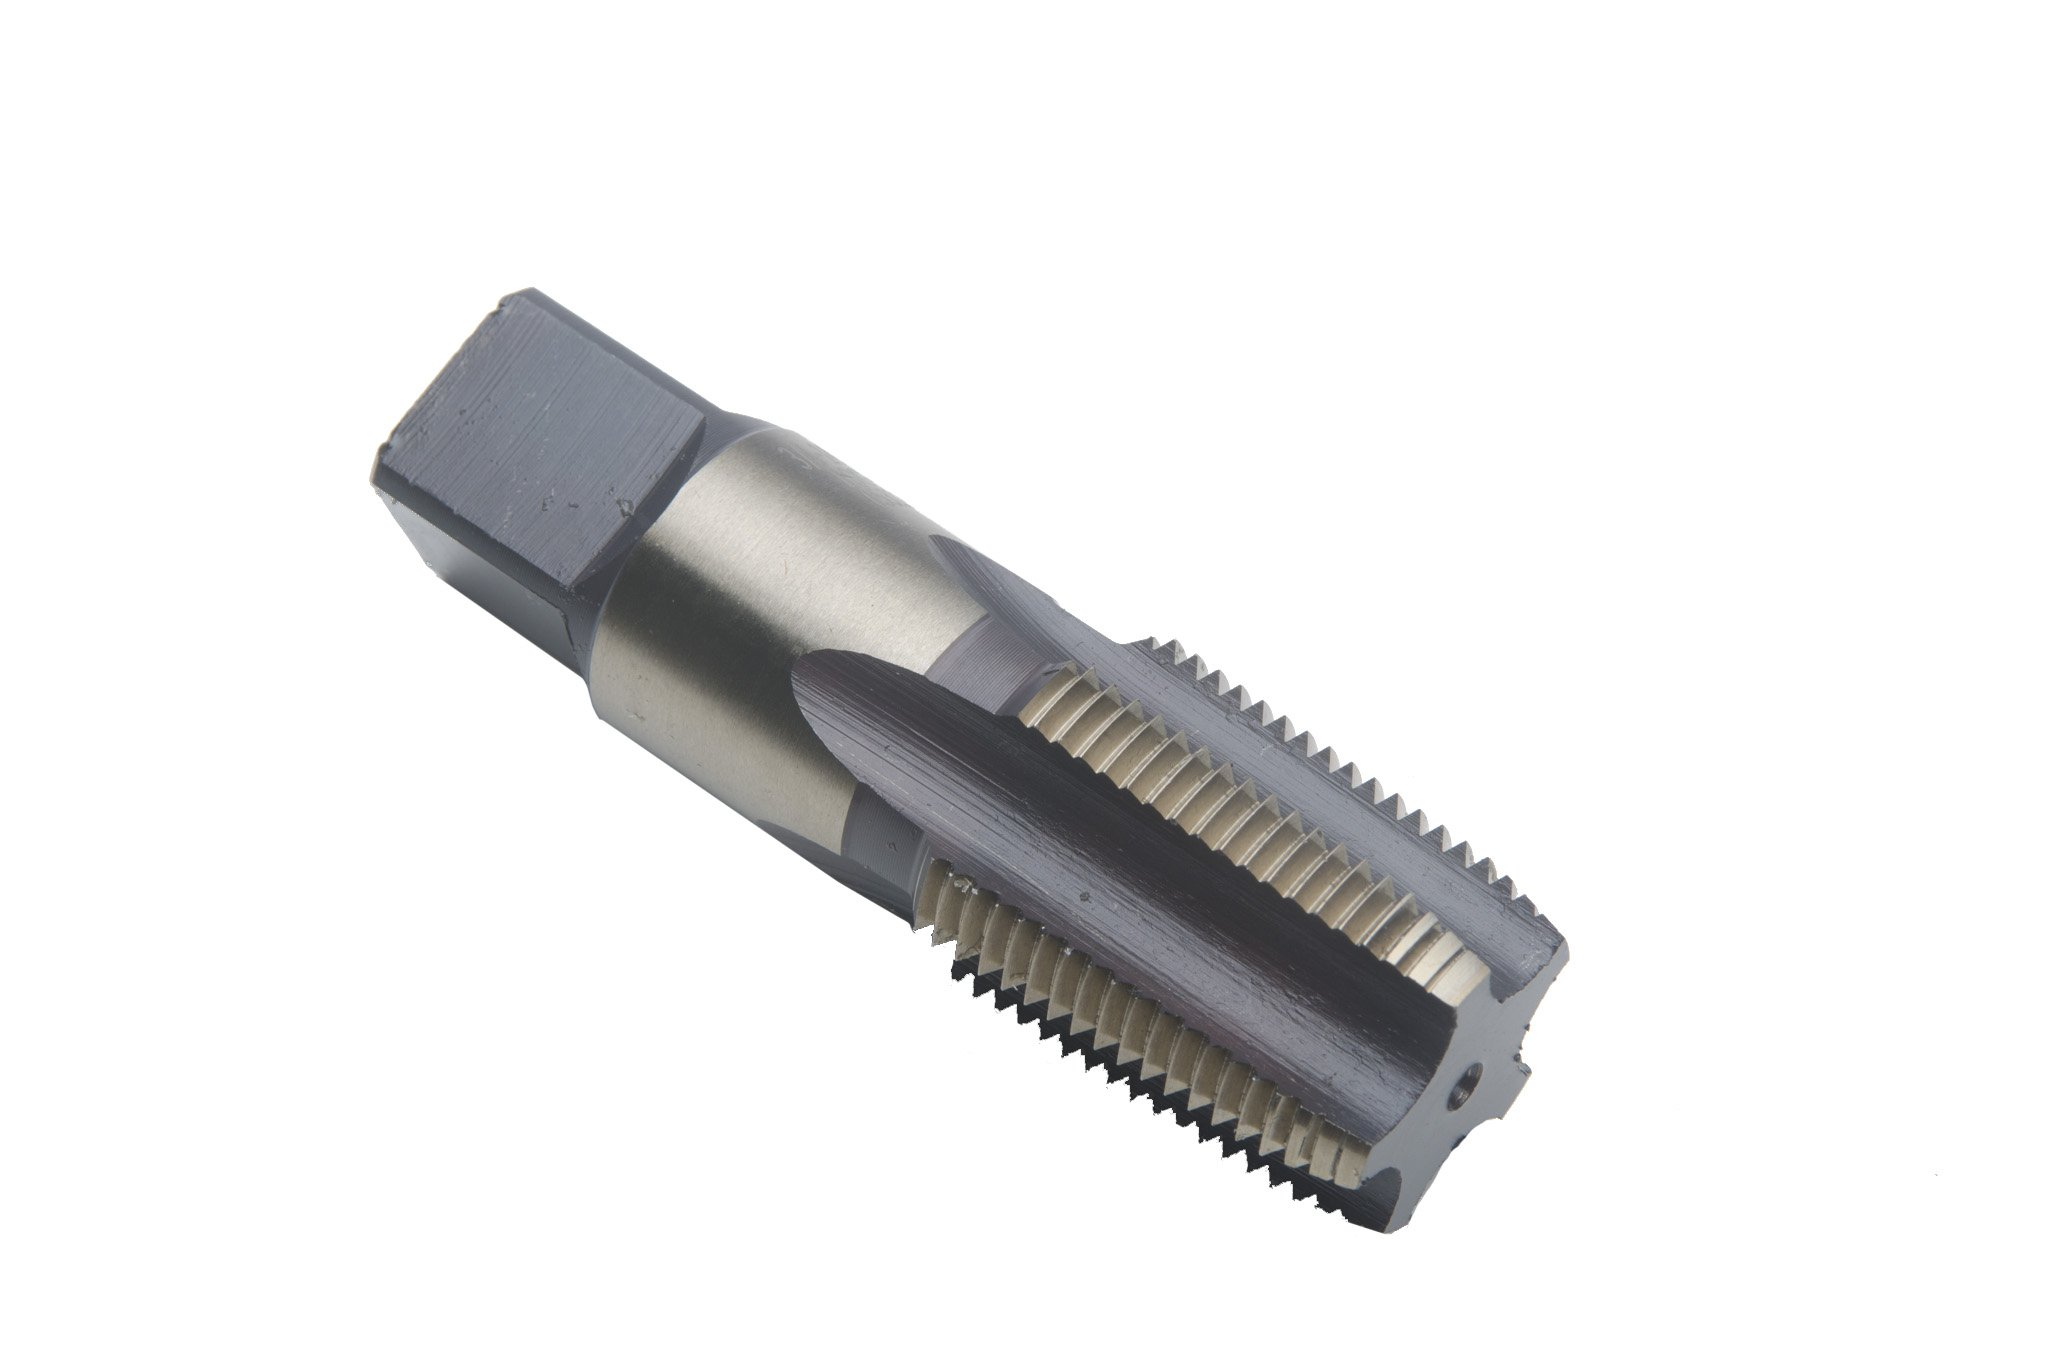 Triumph Twist Drill 71250 1/8-27 NPT T65HD High Speed Steel NPT Pipe Tap Thundertap Bronze Oxide Coated